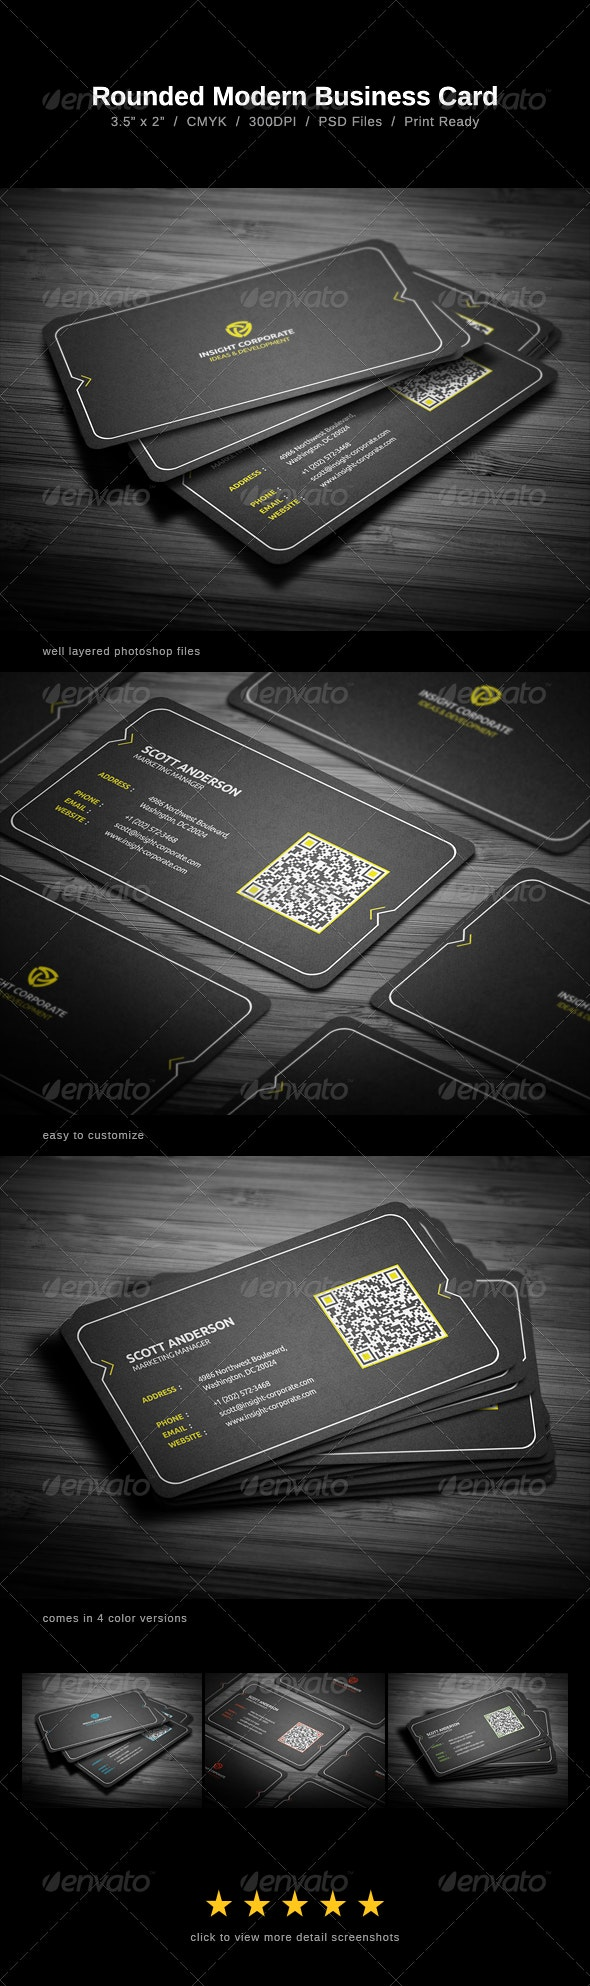 Rounded Modern Business Card - Corporate Business Cards